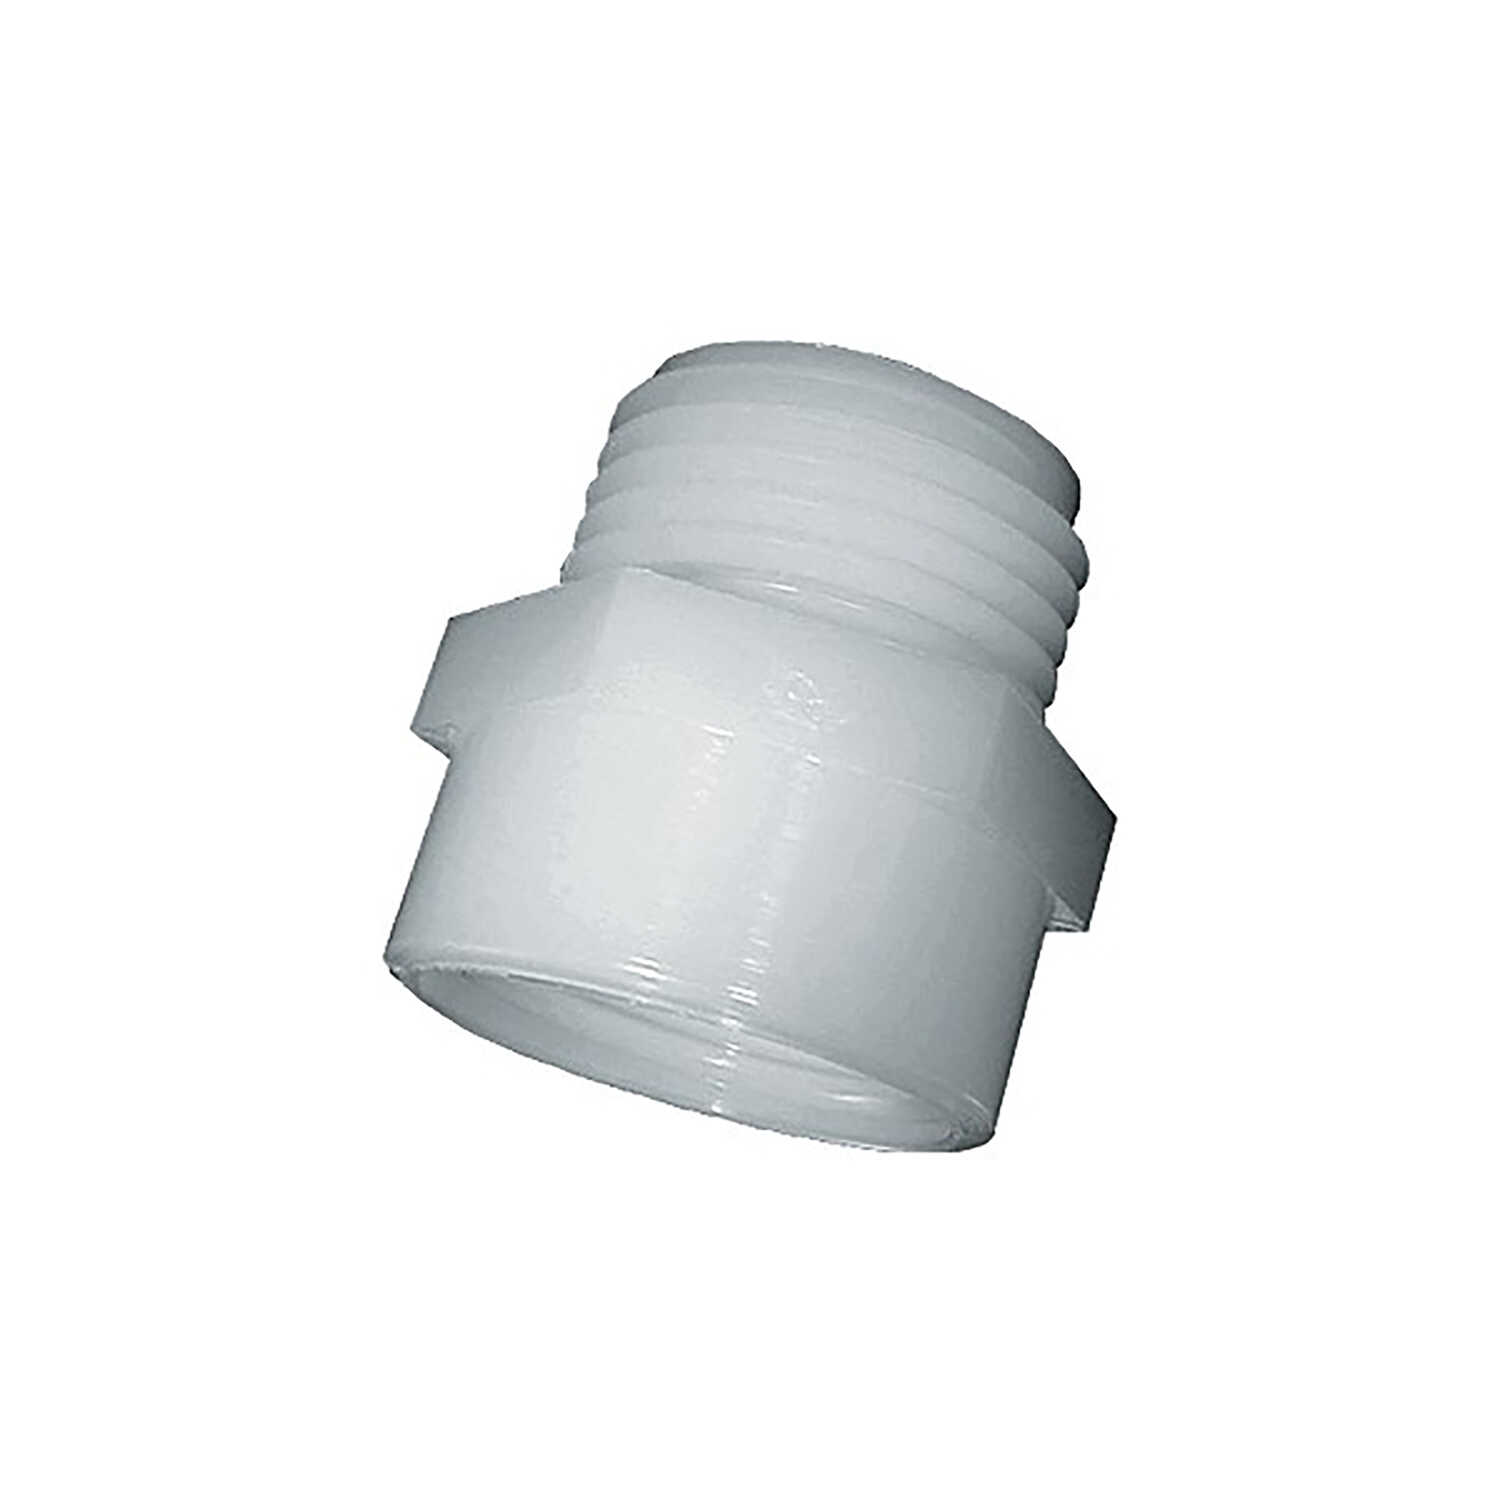 Green Leaf  3/4 in. MGHT   x 3/4 in. Dia. FPT  Nylon  Hose Adapter